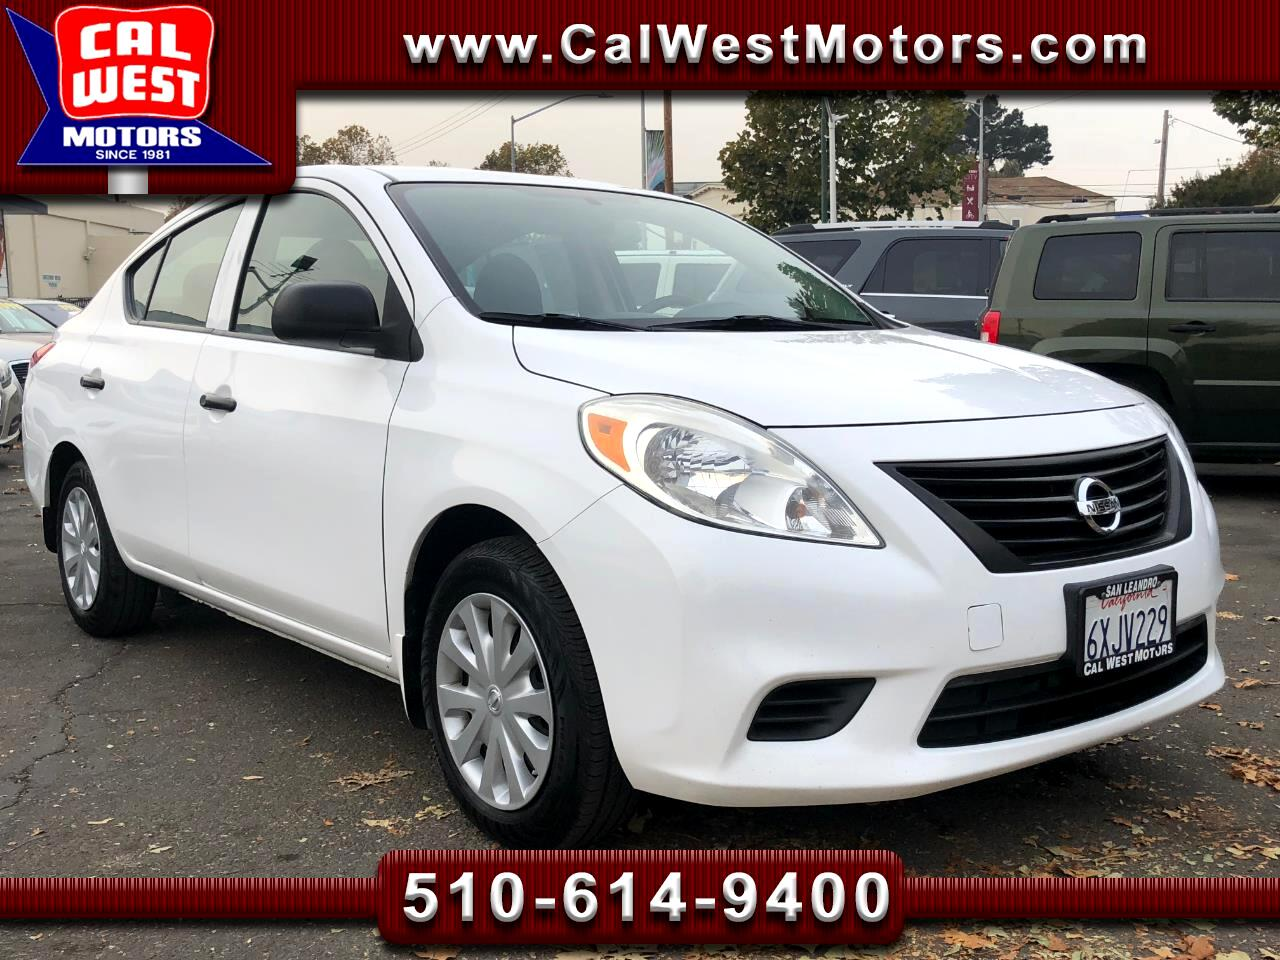 Used 2013 Nissan Versa For Sale In San Leandro Ca 94577 Cal West Motors